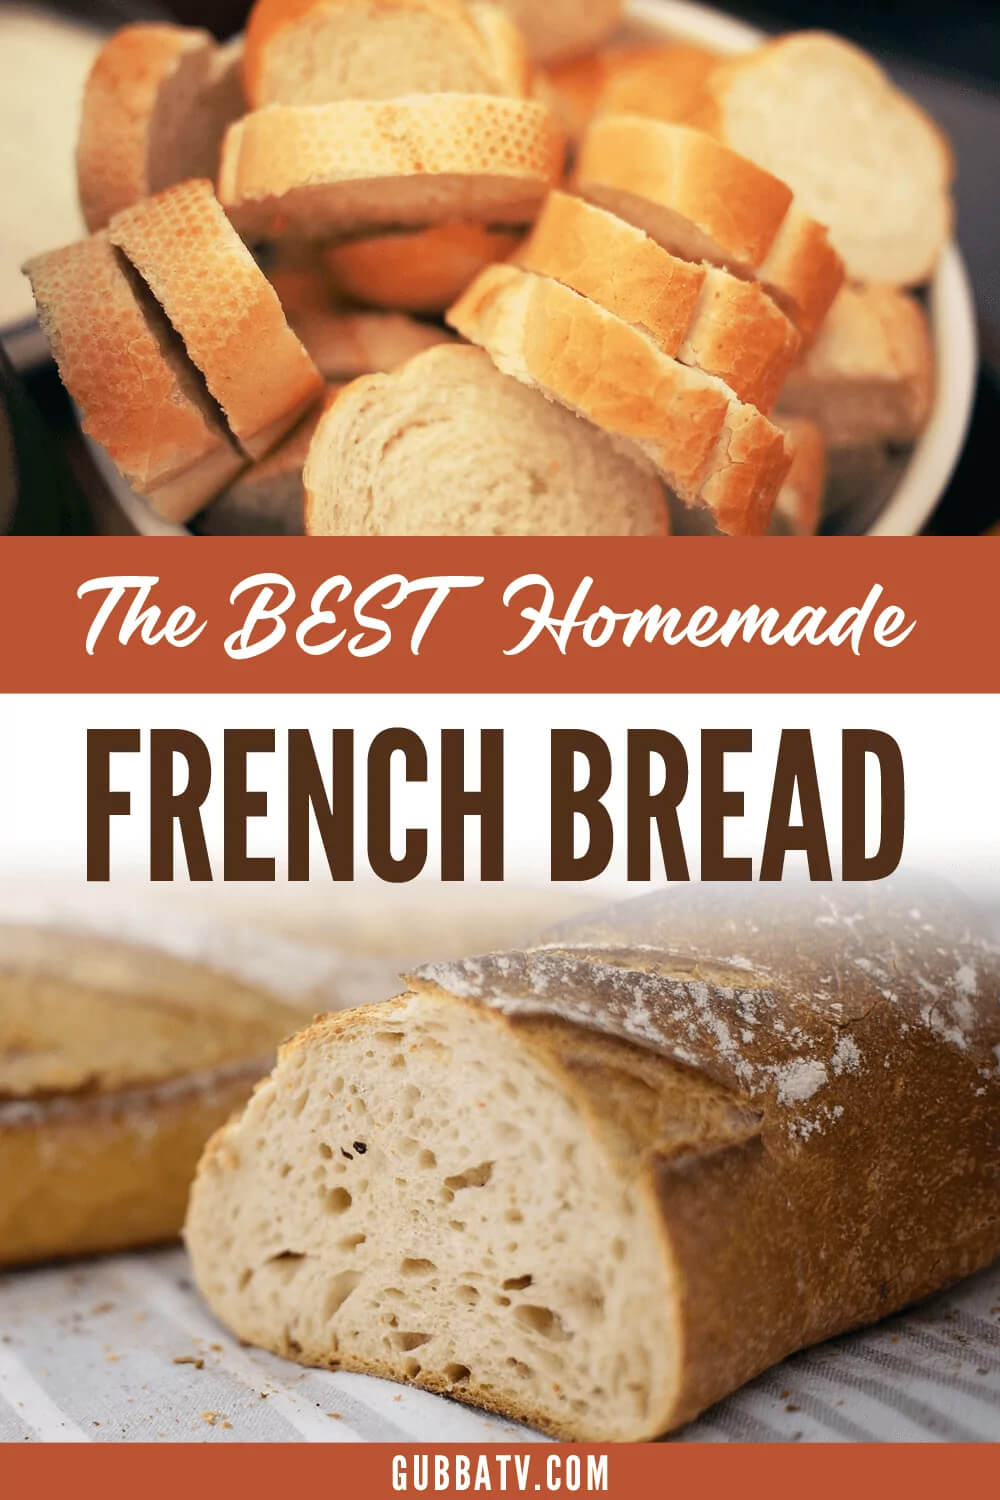 The BEST Homemade French Bread